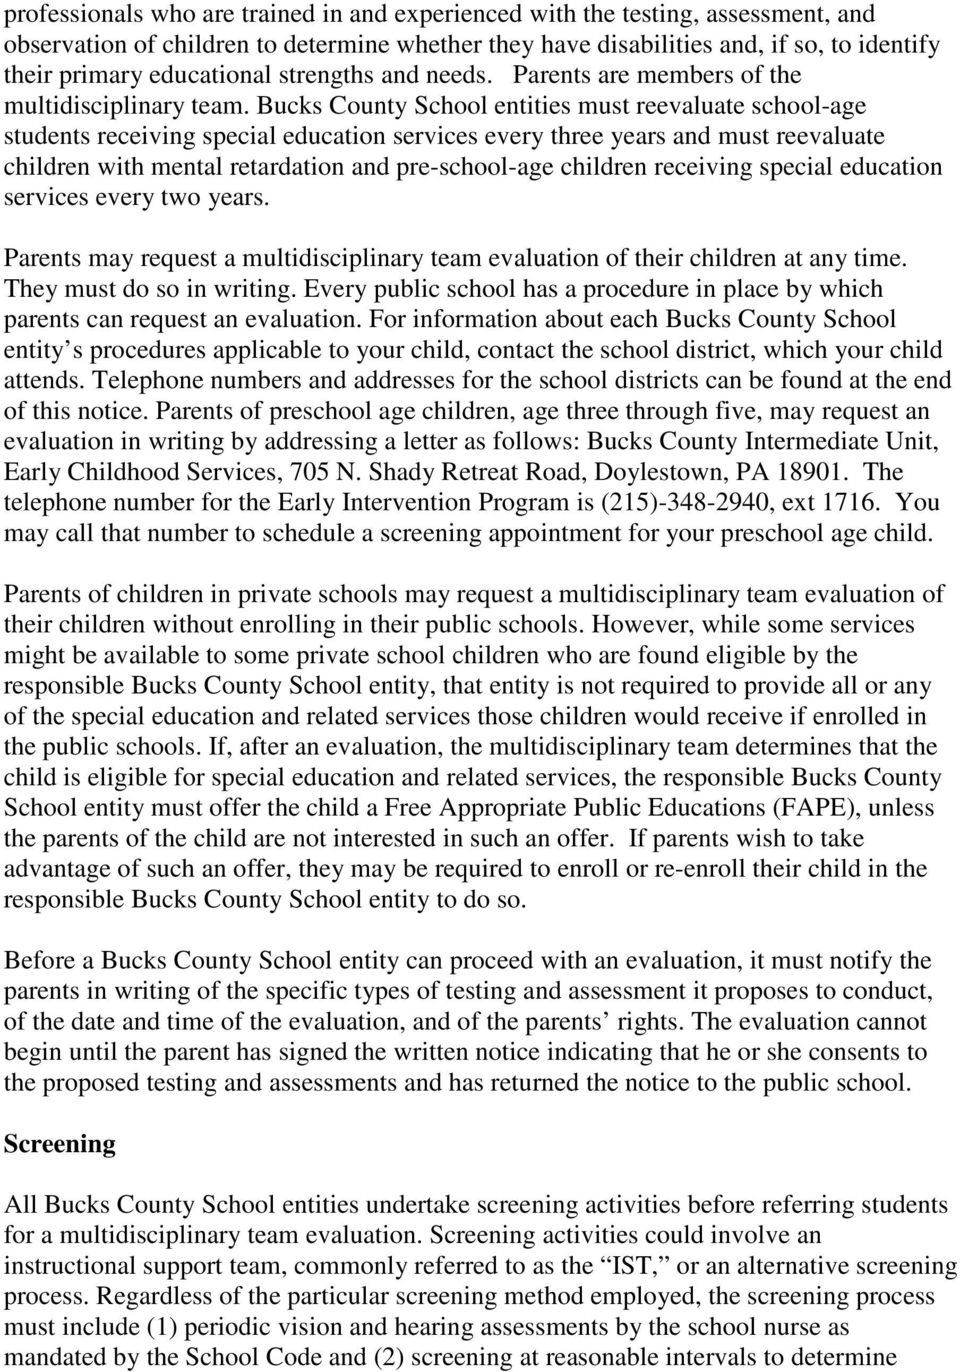 Bucks County School entities must reevaluate school-age students receiving special education services every three years and must reevaluate children with mental retardation and pre-school-age